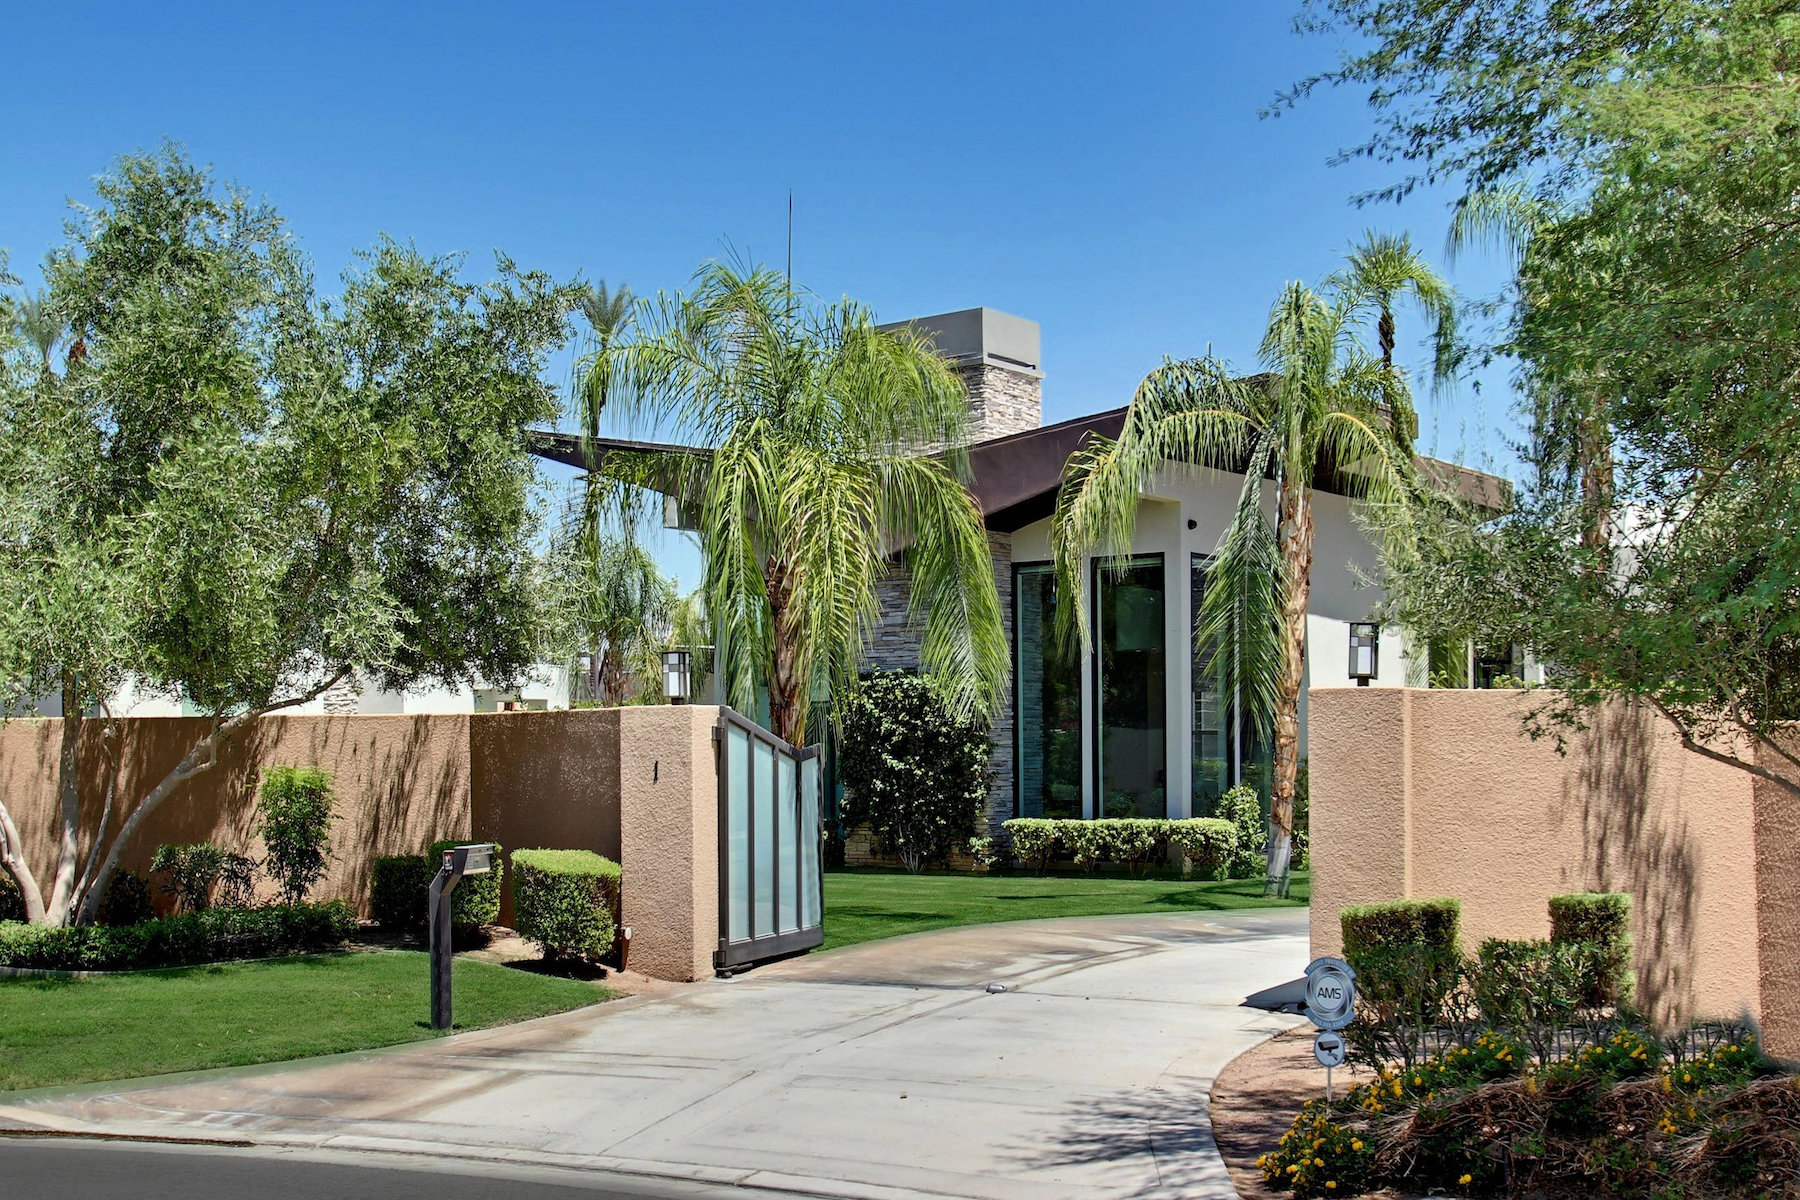 Single Family Homes for Active at 1 Belleza Court Rancho Mirage, California 92270 United States